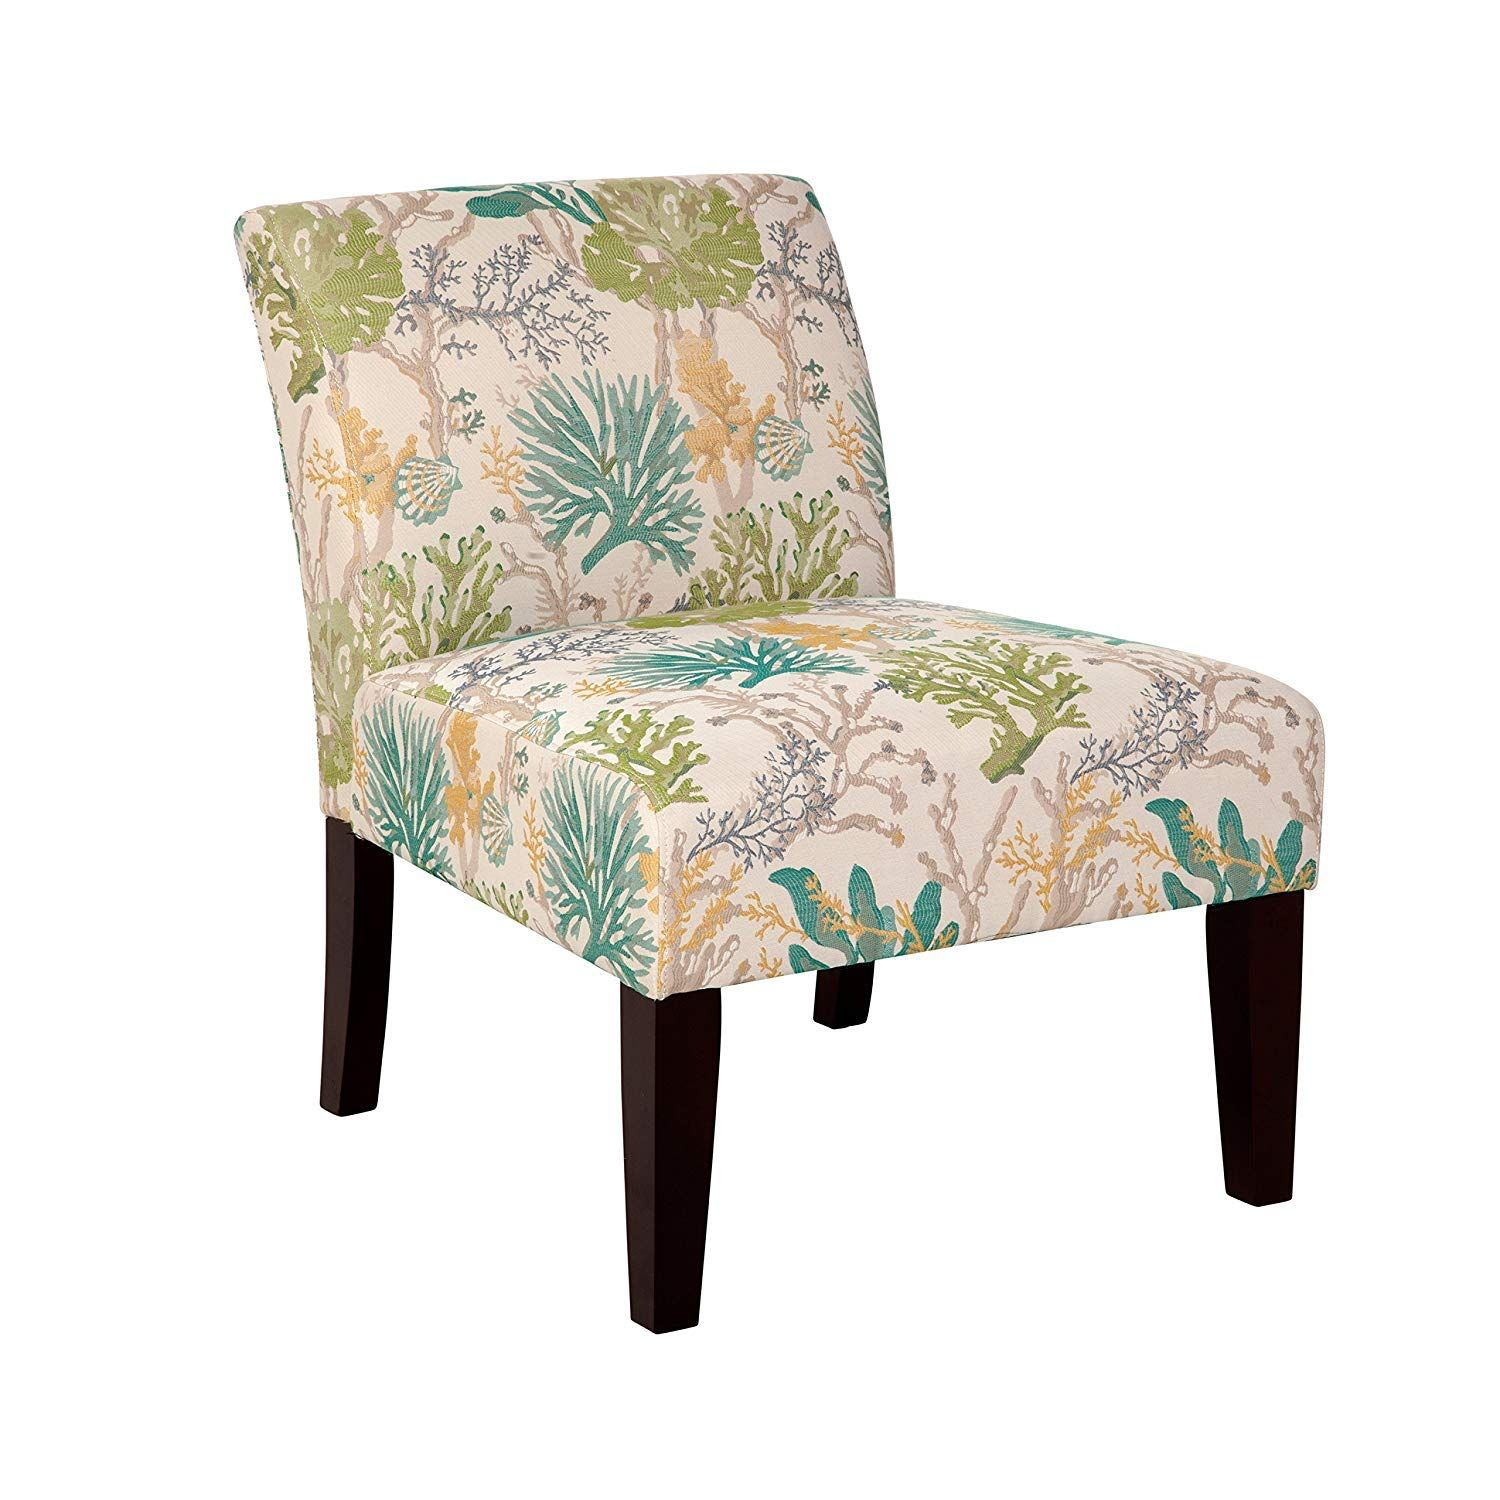 Tremendous Discover The Best Coastal Accent Chairs And Beachy Accent Download Free Architecture Designs Terstmadebymaigaardcom